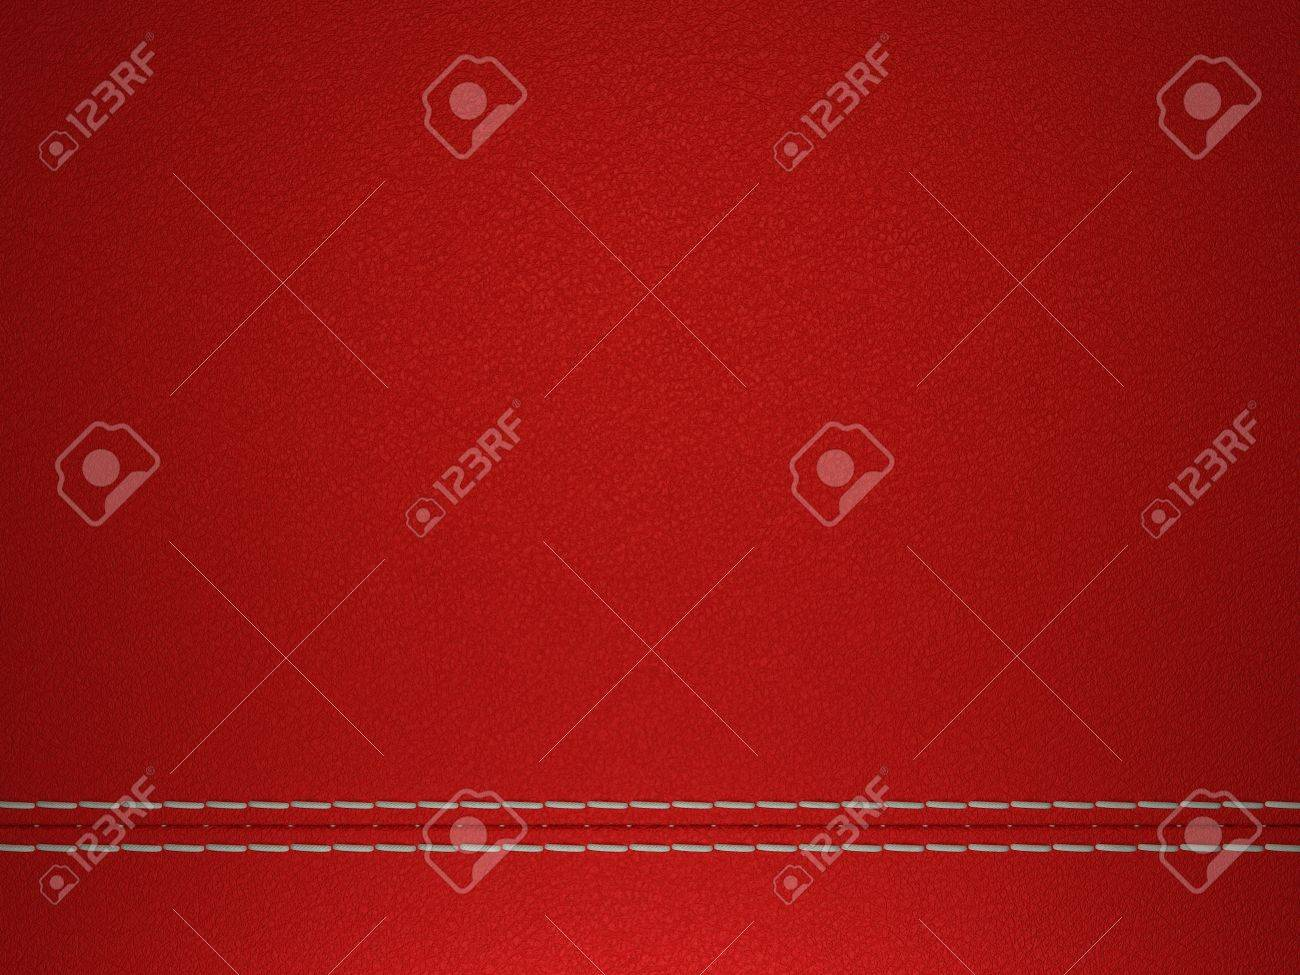 Red horizontal stitched leather background. Large resolution Stock Photo - 9229967